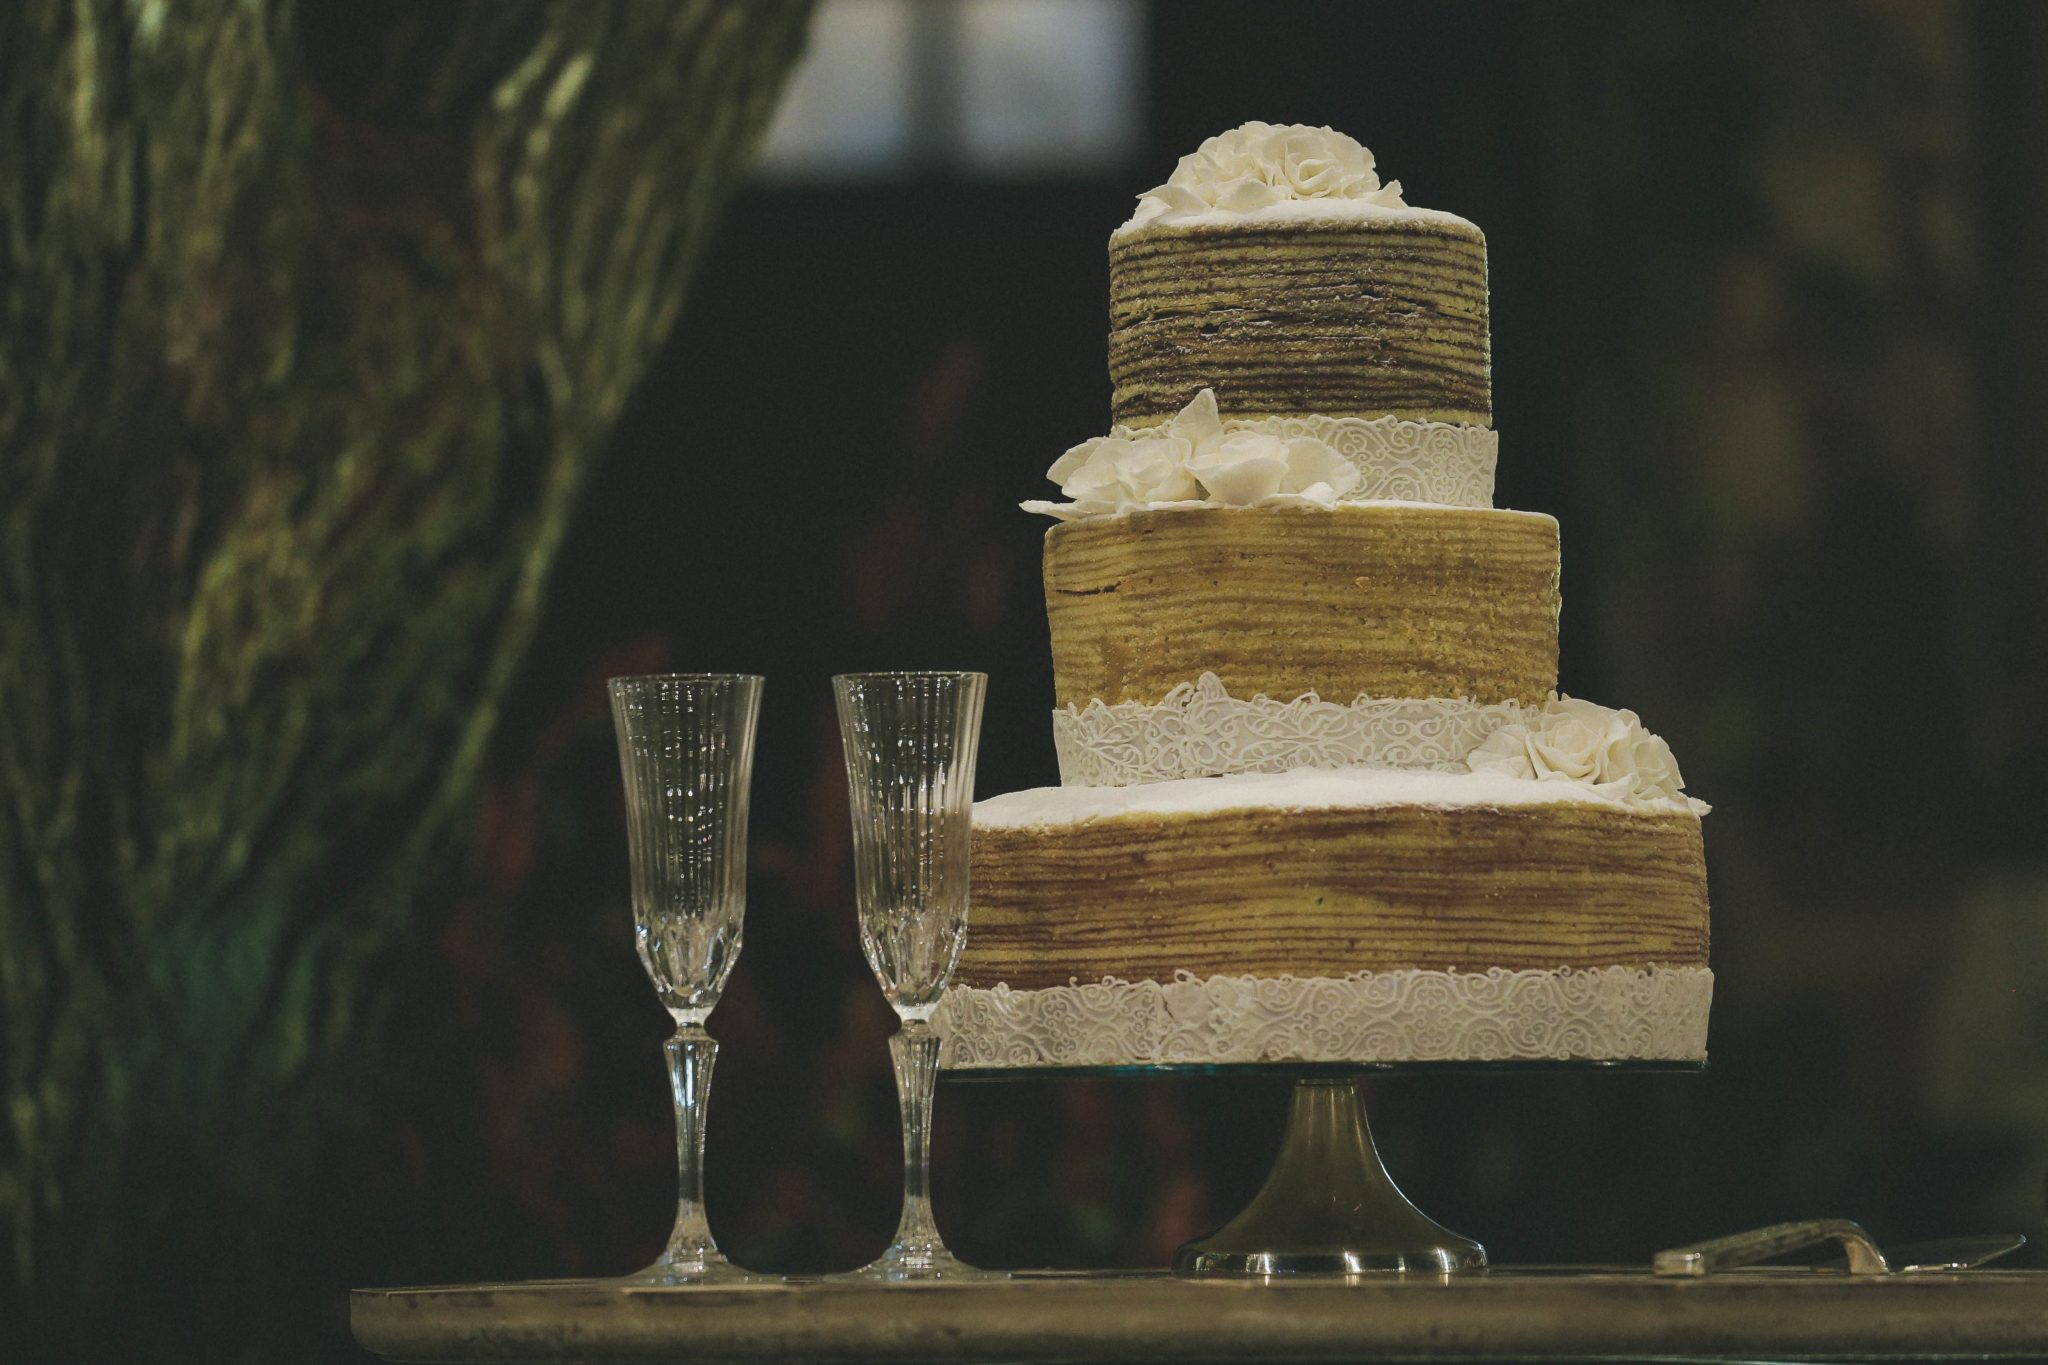 Clever ways to display your cake.